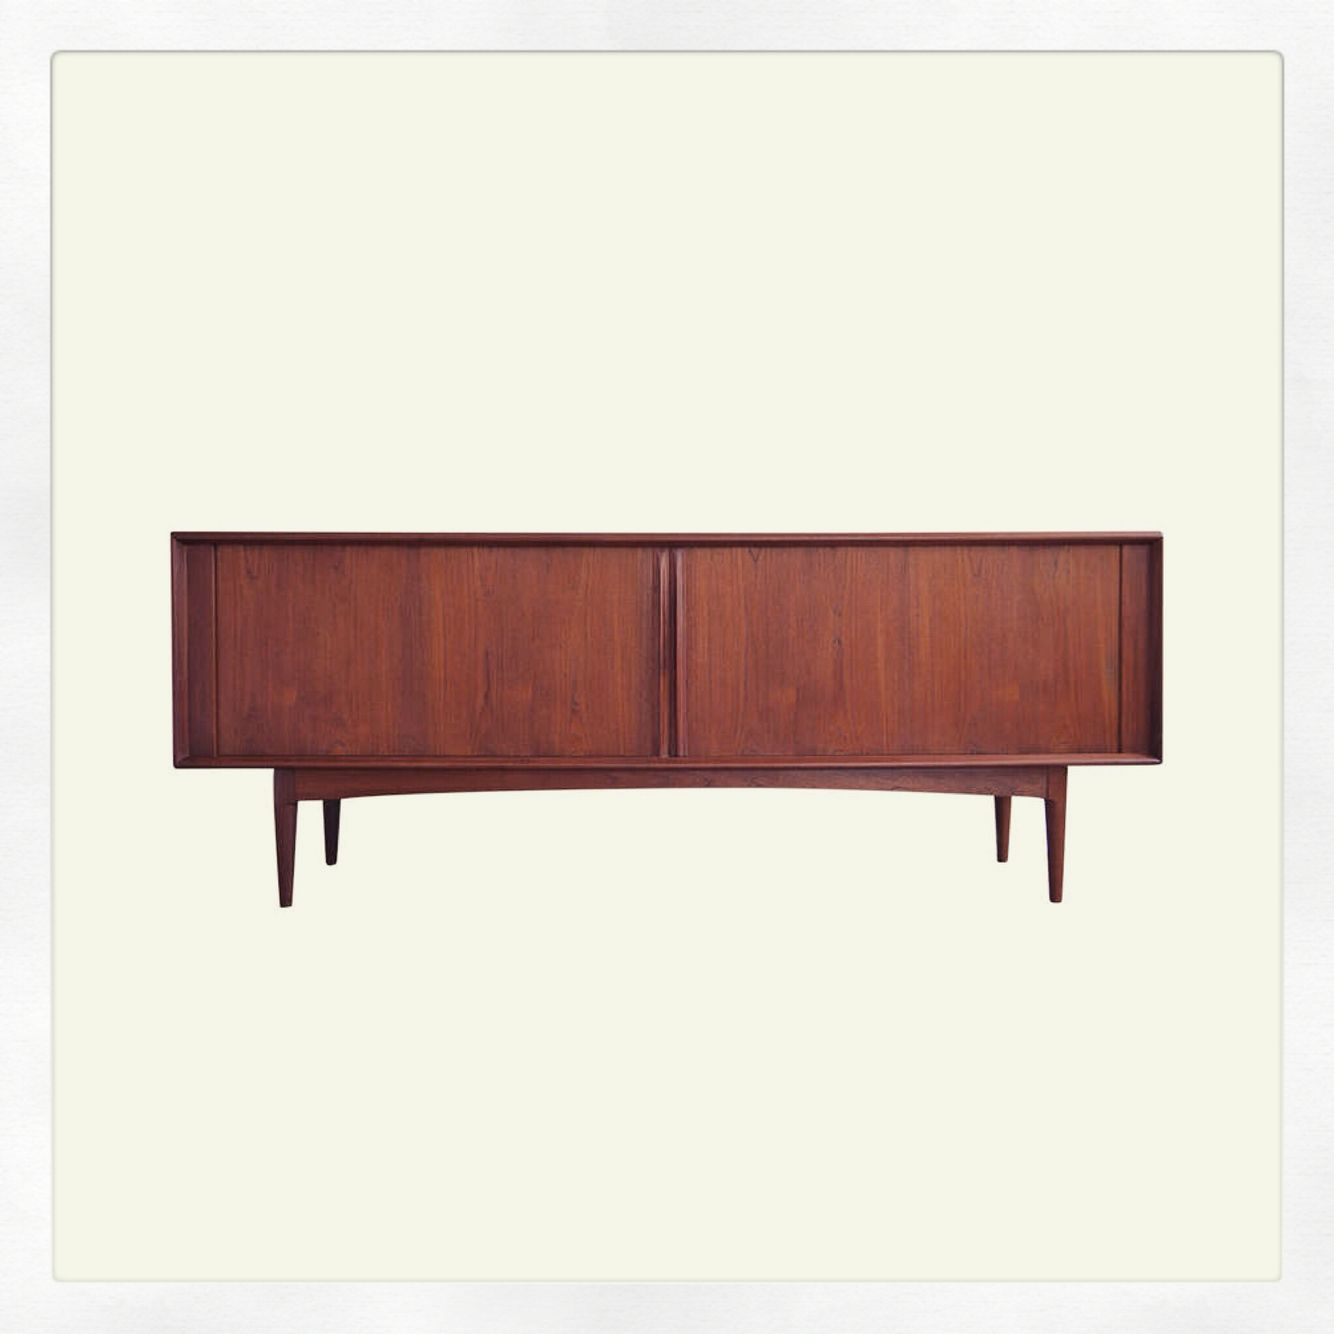 Vintage Sideboard Sliding Doors Vintage Bernhard Pedersen And Son Credenza This Beautiful